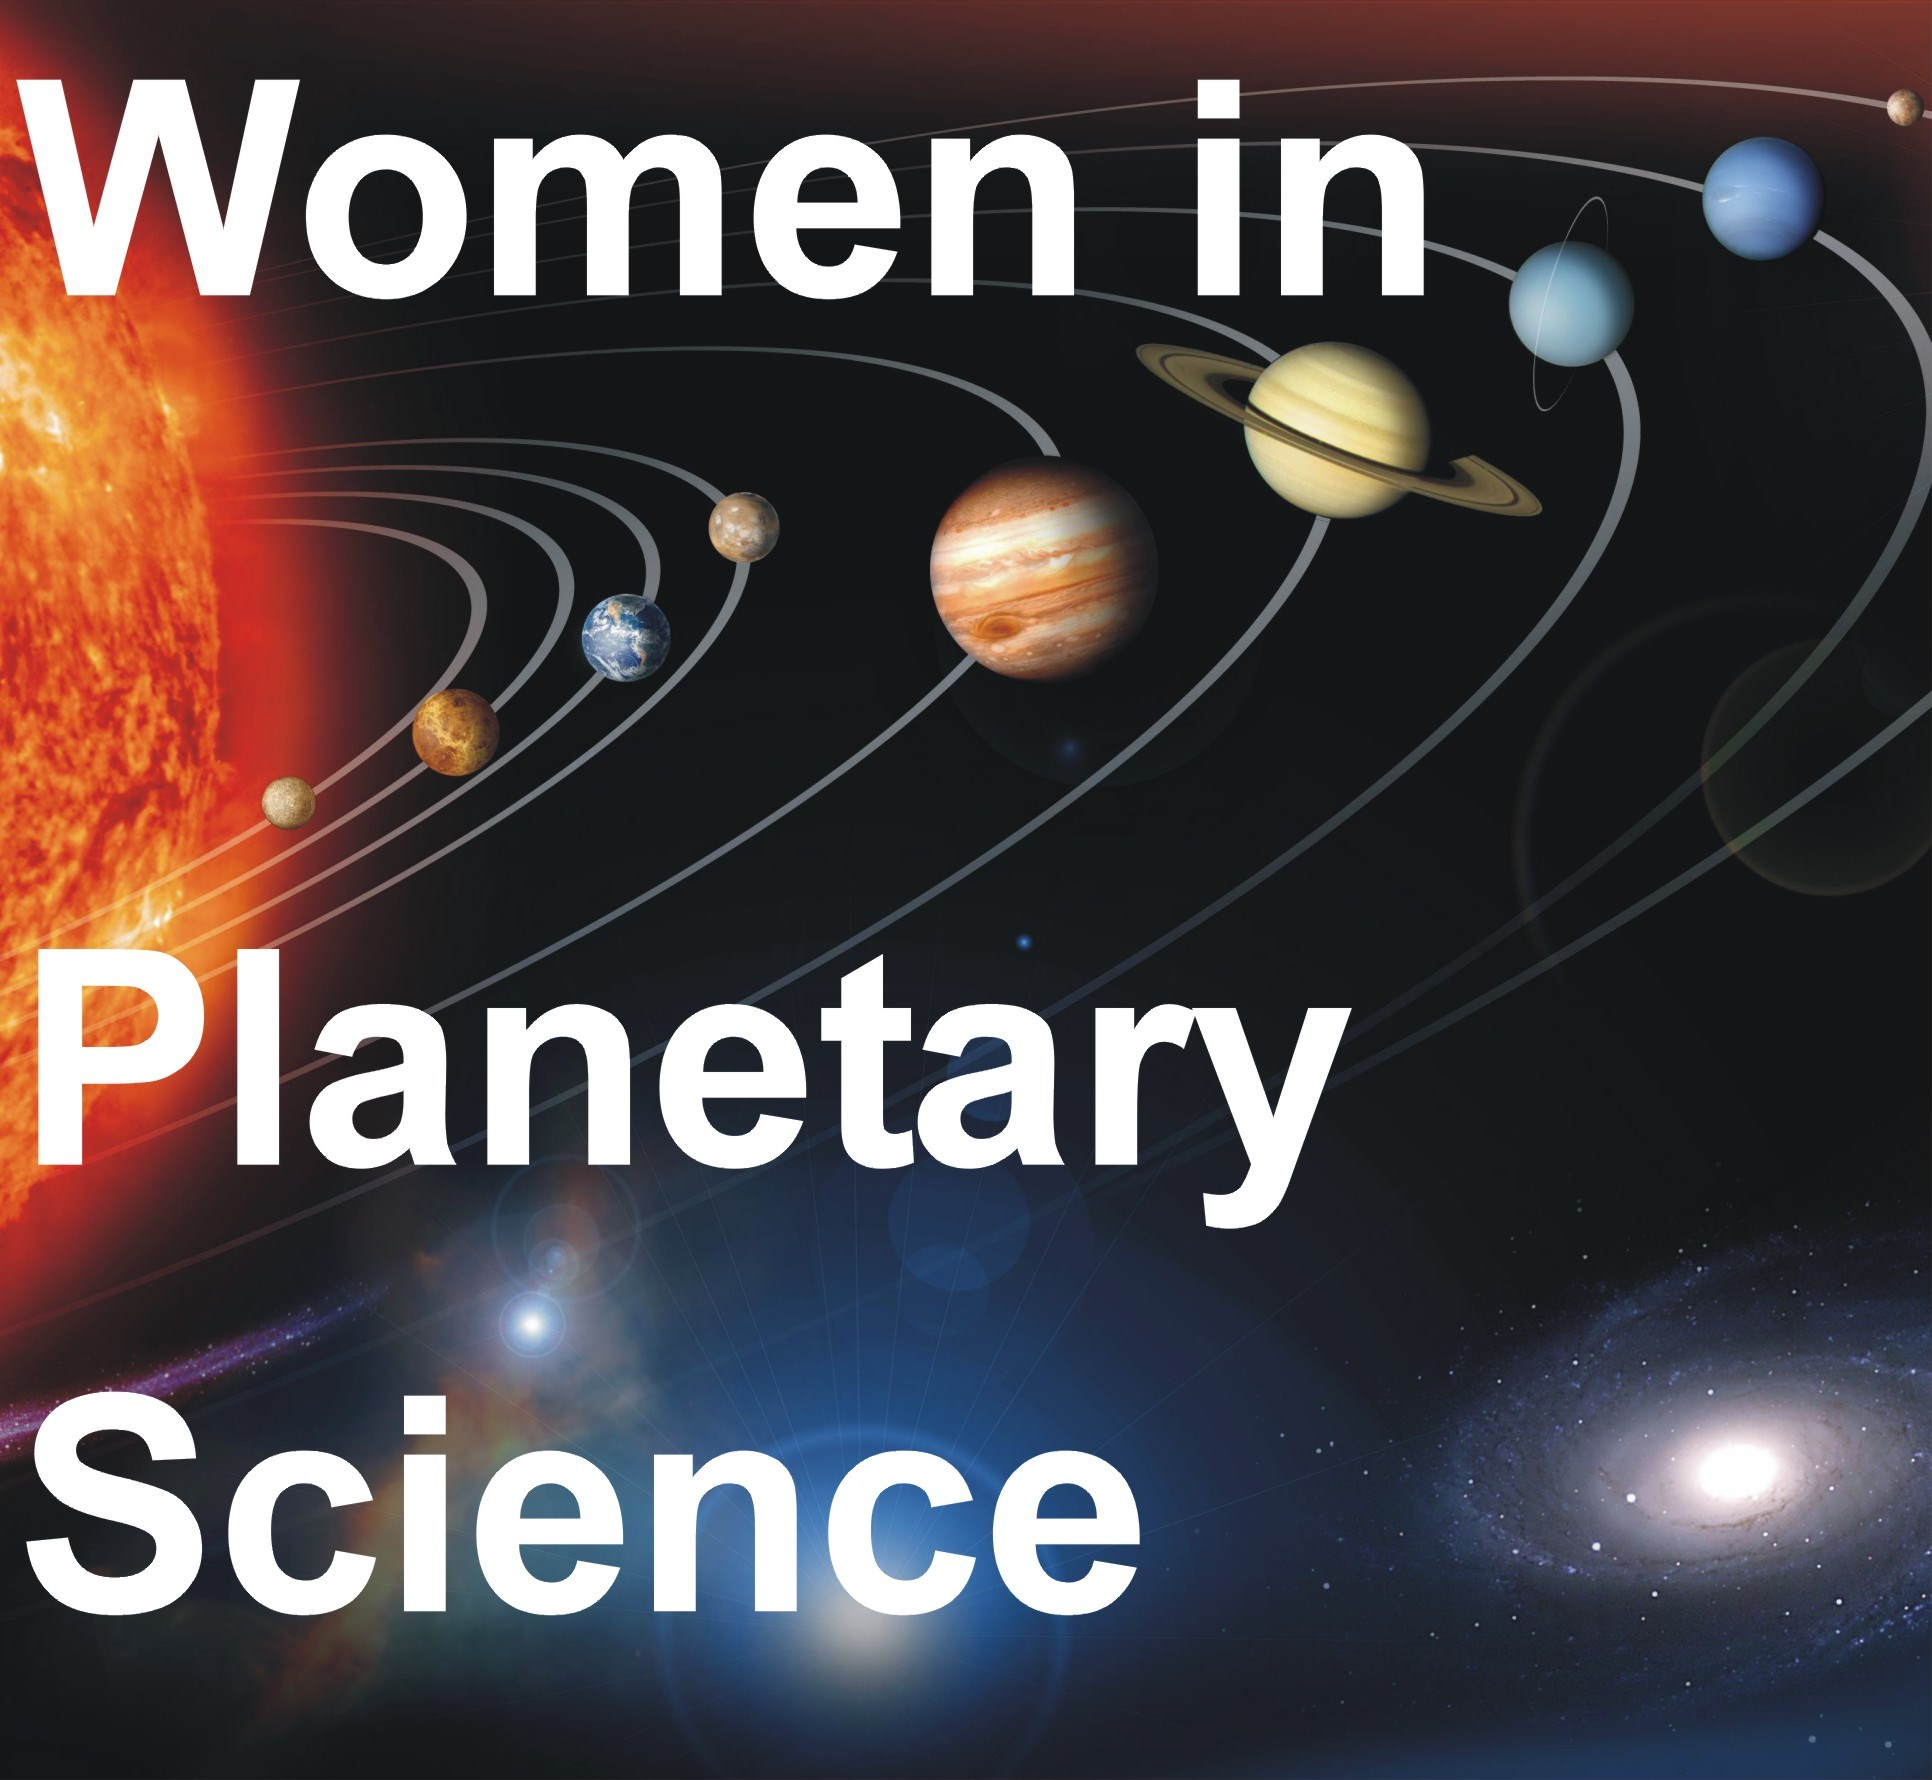 Jobs | Women In Planetary Science: Female Scientists On Careers, Research, Space  Science, And Work/Life Balance